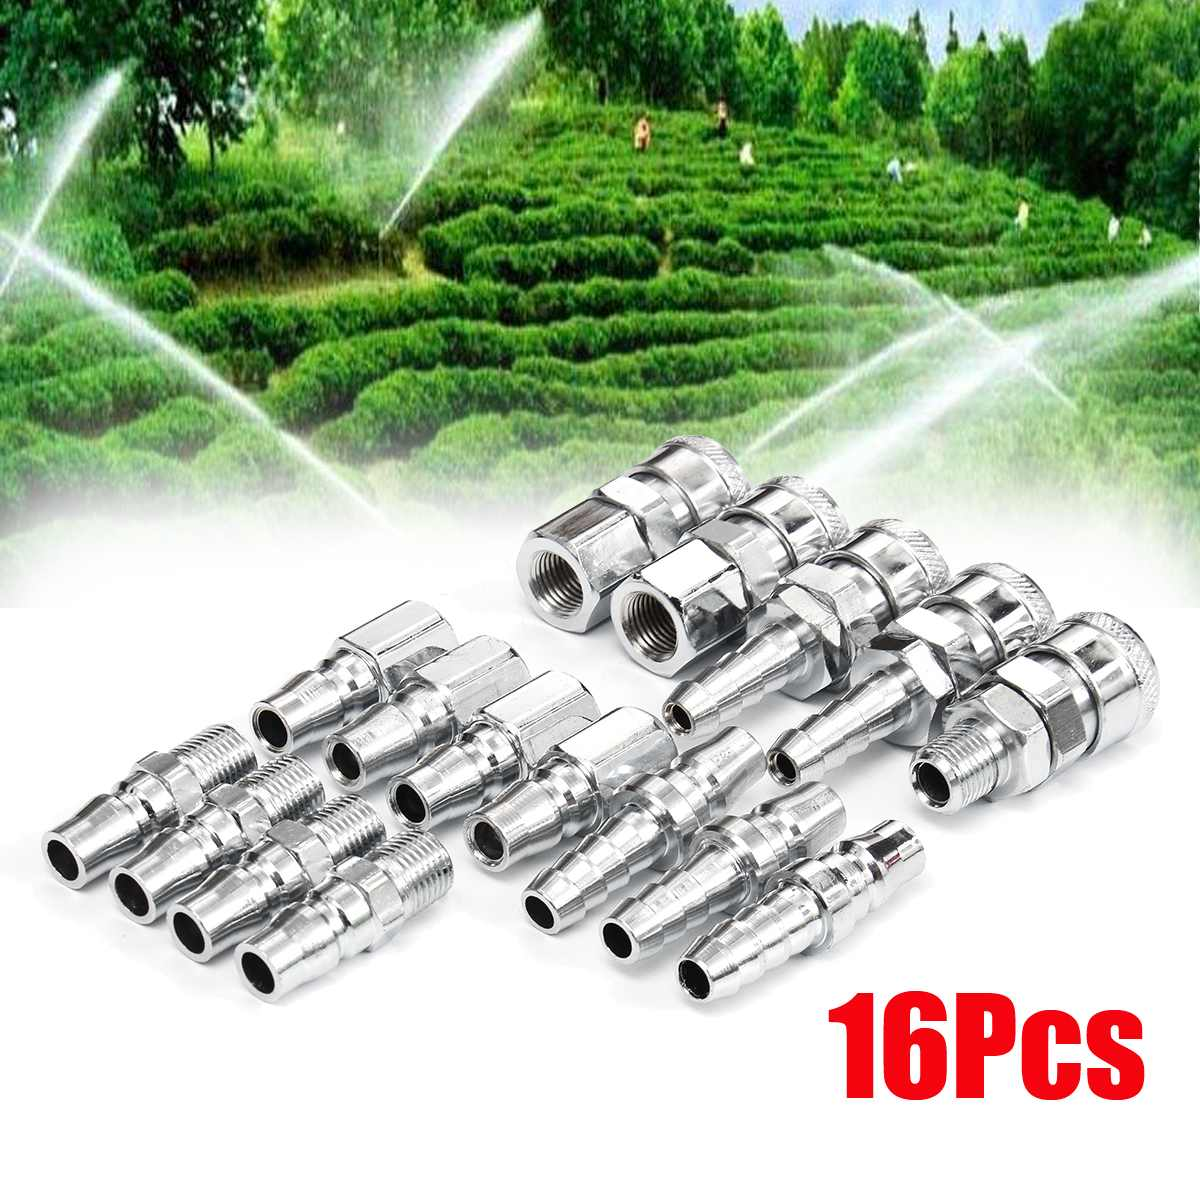 New 16pcs Quick Connector BSP Air Line Hose Fittings Compressor Connector Quick Release Coupler SetNew 16pcs Quick Connector BSP Air Line Hose Fittings Compressor Connector Quick Release Coupler Set